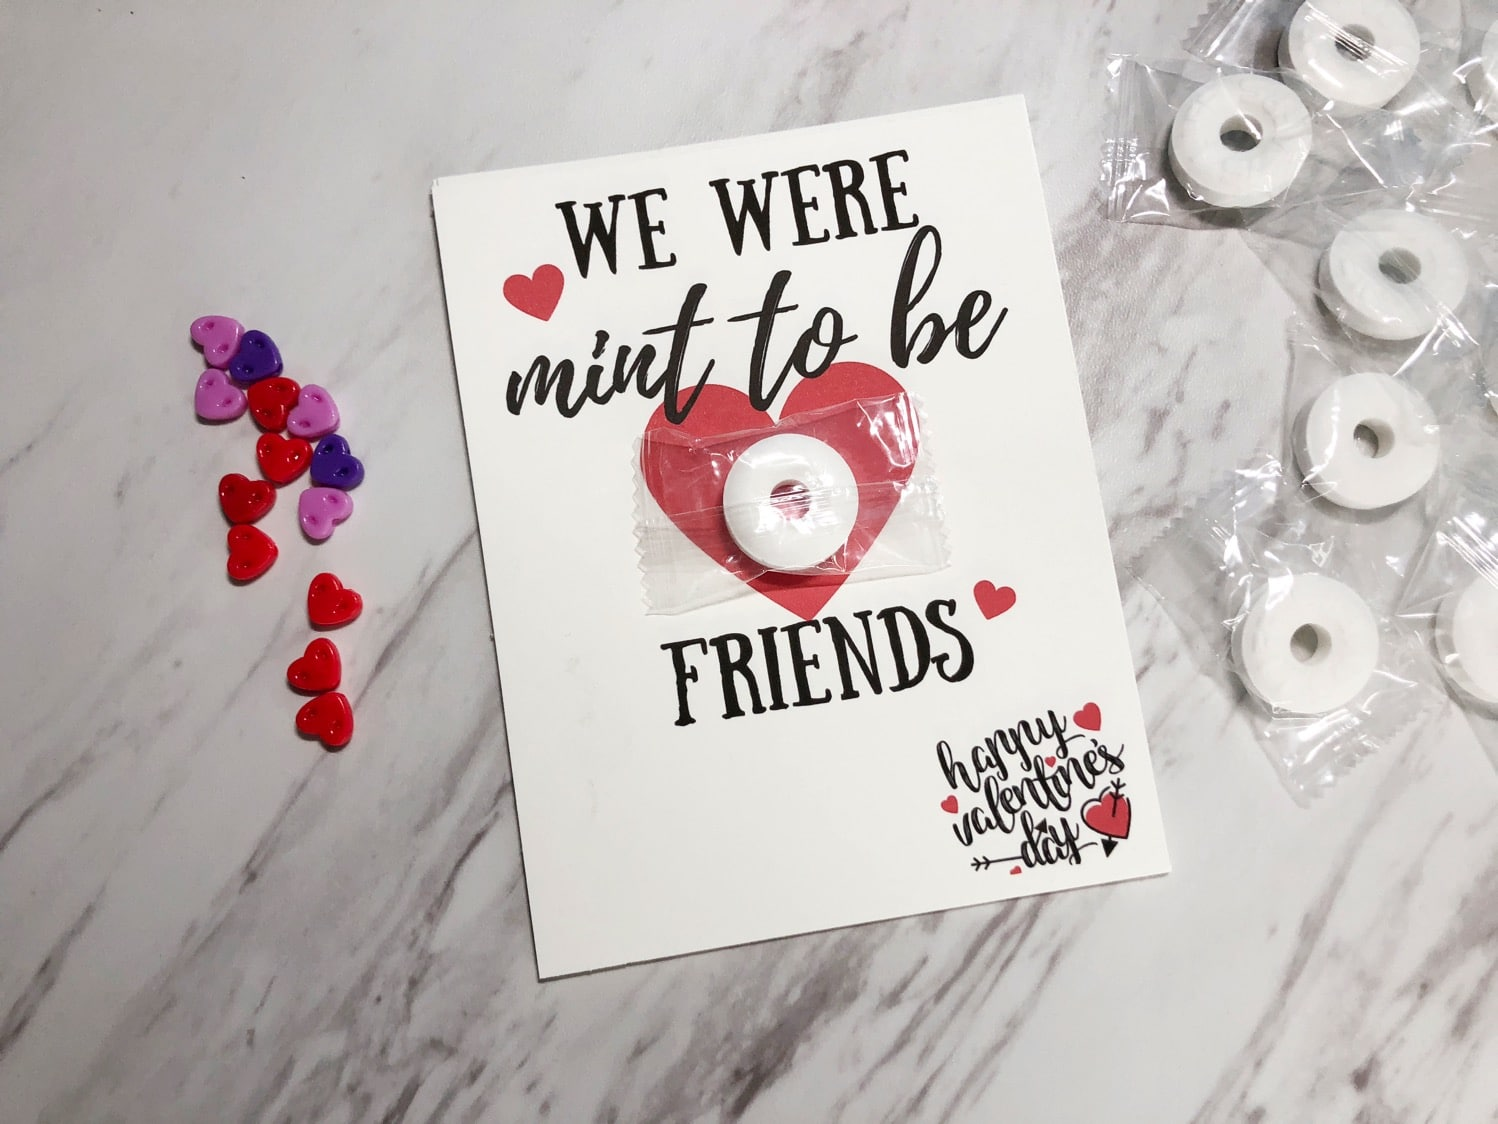 We were mint to be friends Valentine